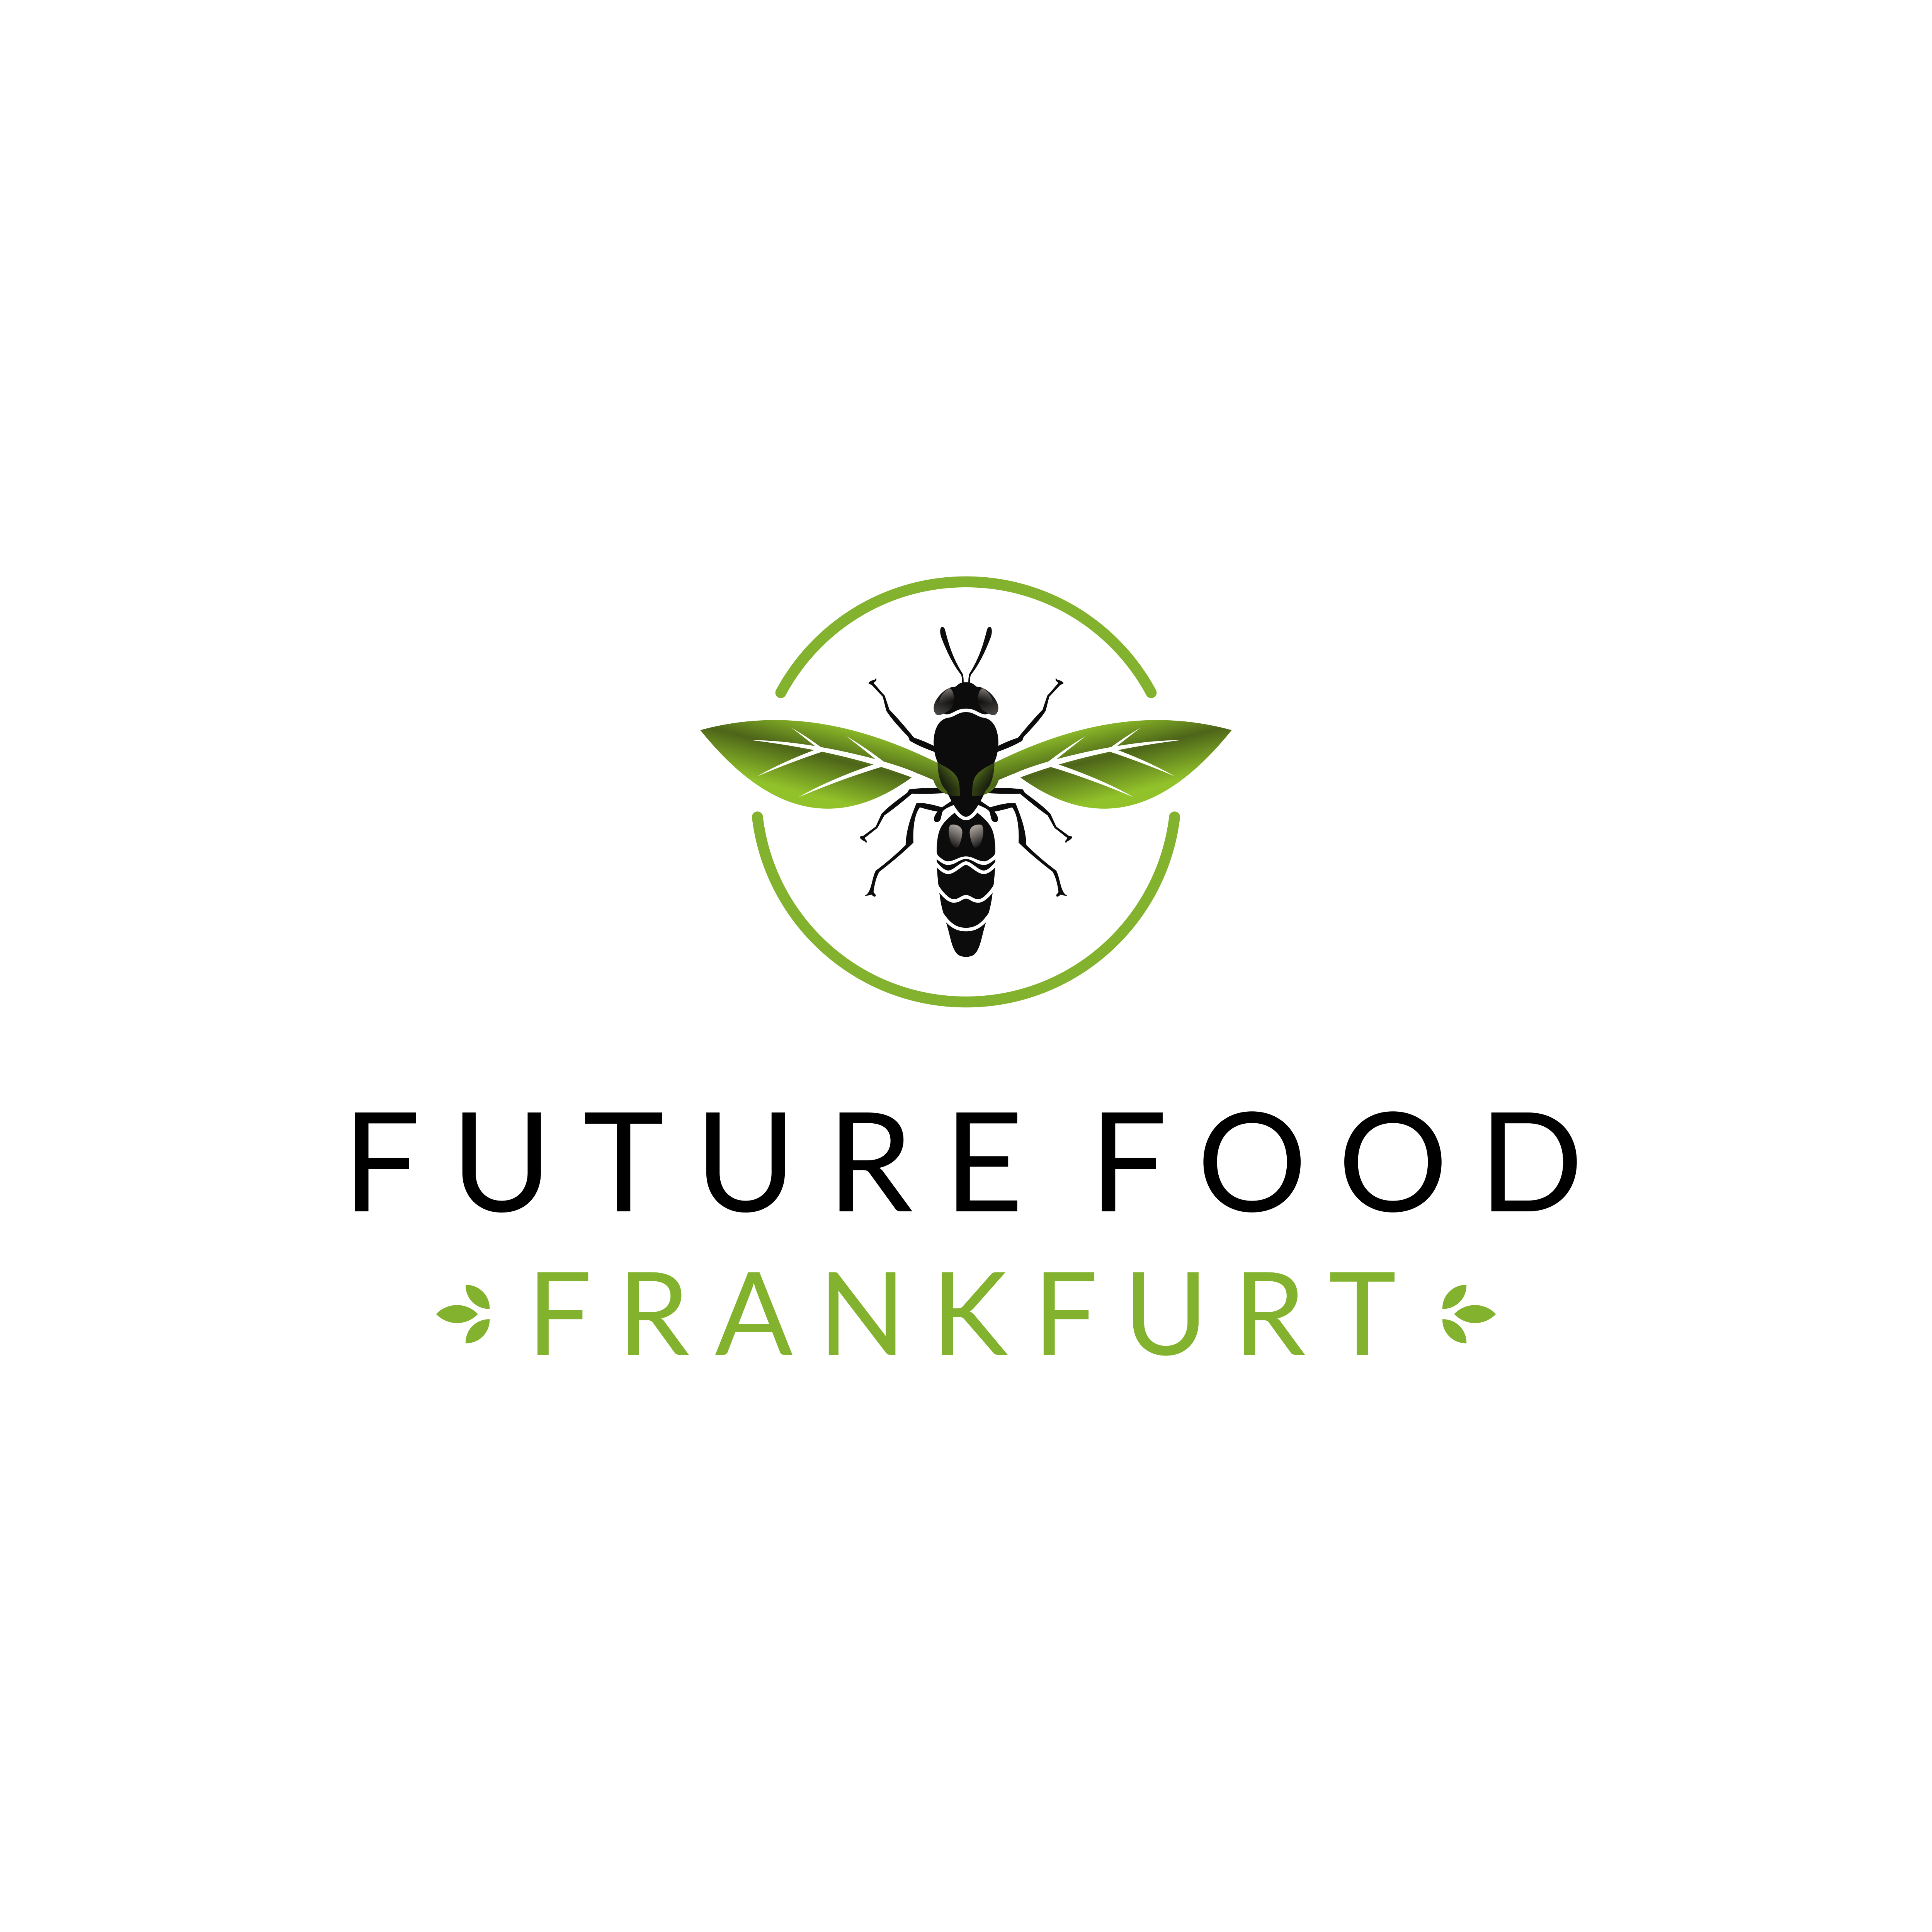 German insect start-up looking for a great logo!